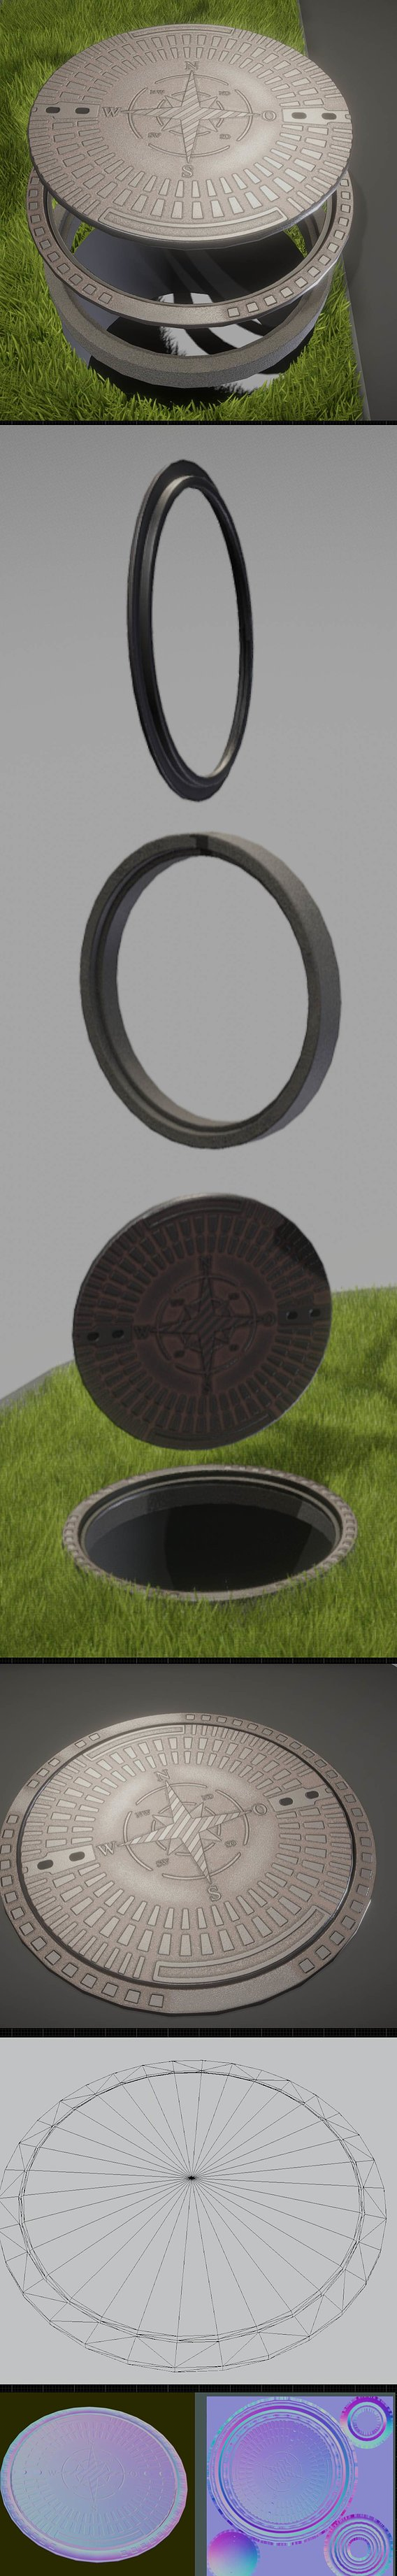 Compass Sewer Cover 4 Rusty Low-Poly Version Low-poly